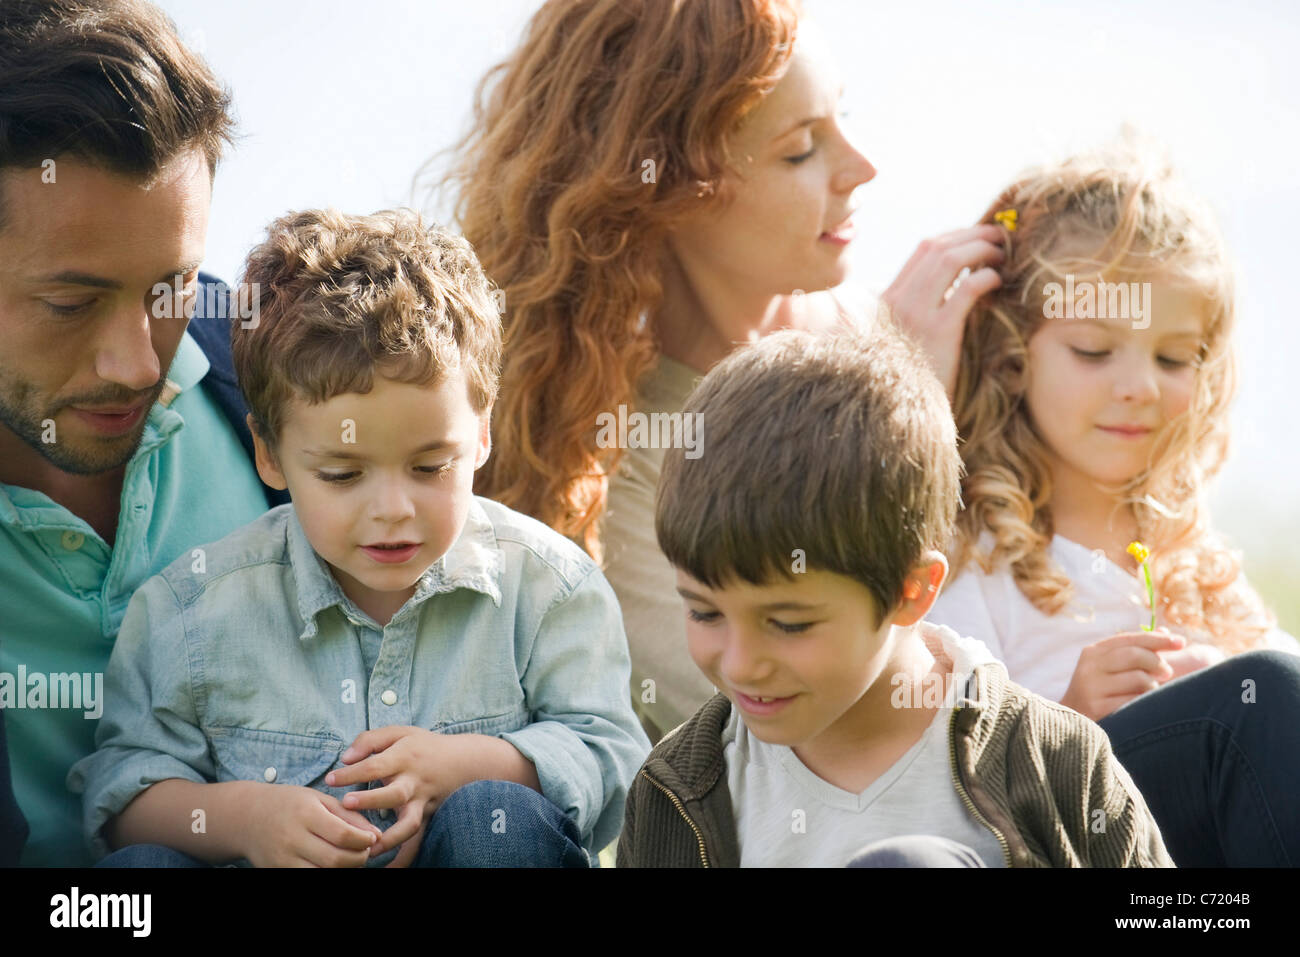 Family relaxing together outdoors - Stock Image